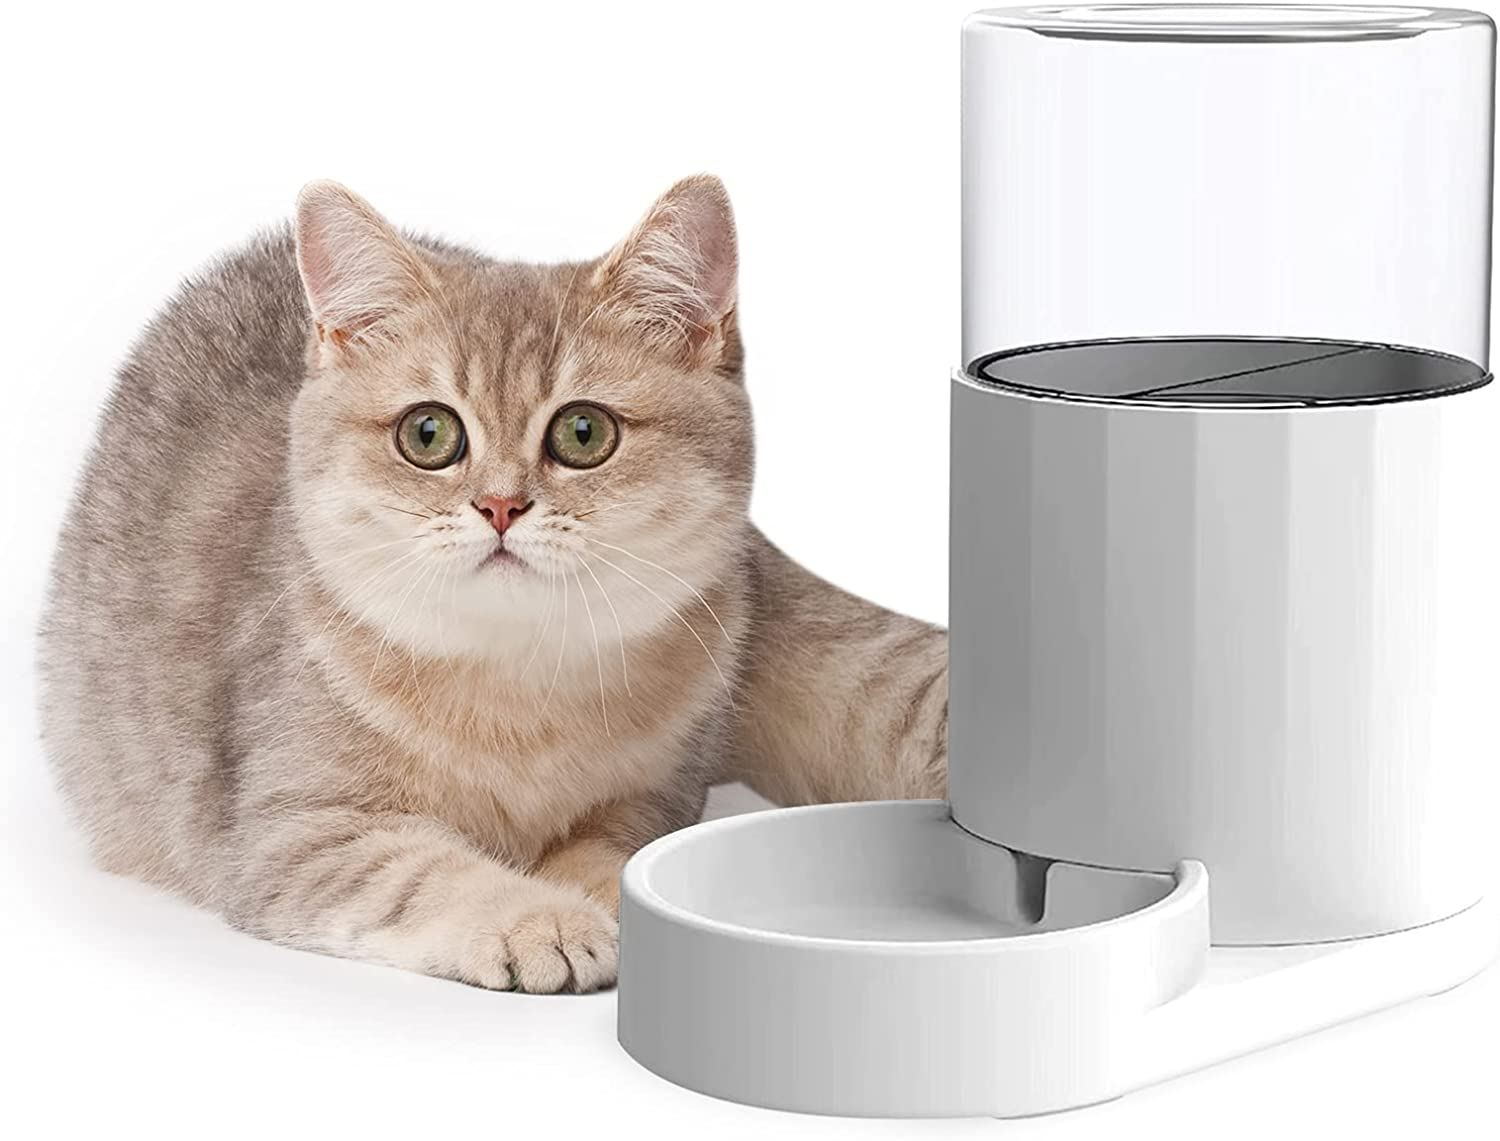 RIZZARI Automatic Pet Waterer and Feeder Cat Waterer 2.5L with Filter for Cats and Small Medium-Sized Dogs Large Capacity Food Bowl (Waterer)